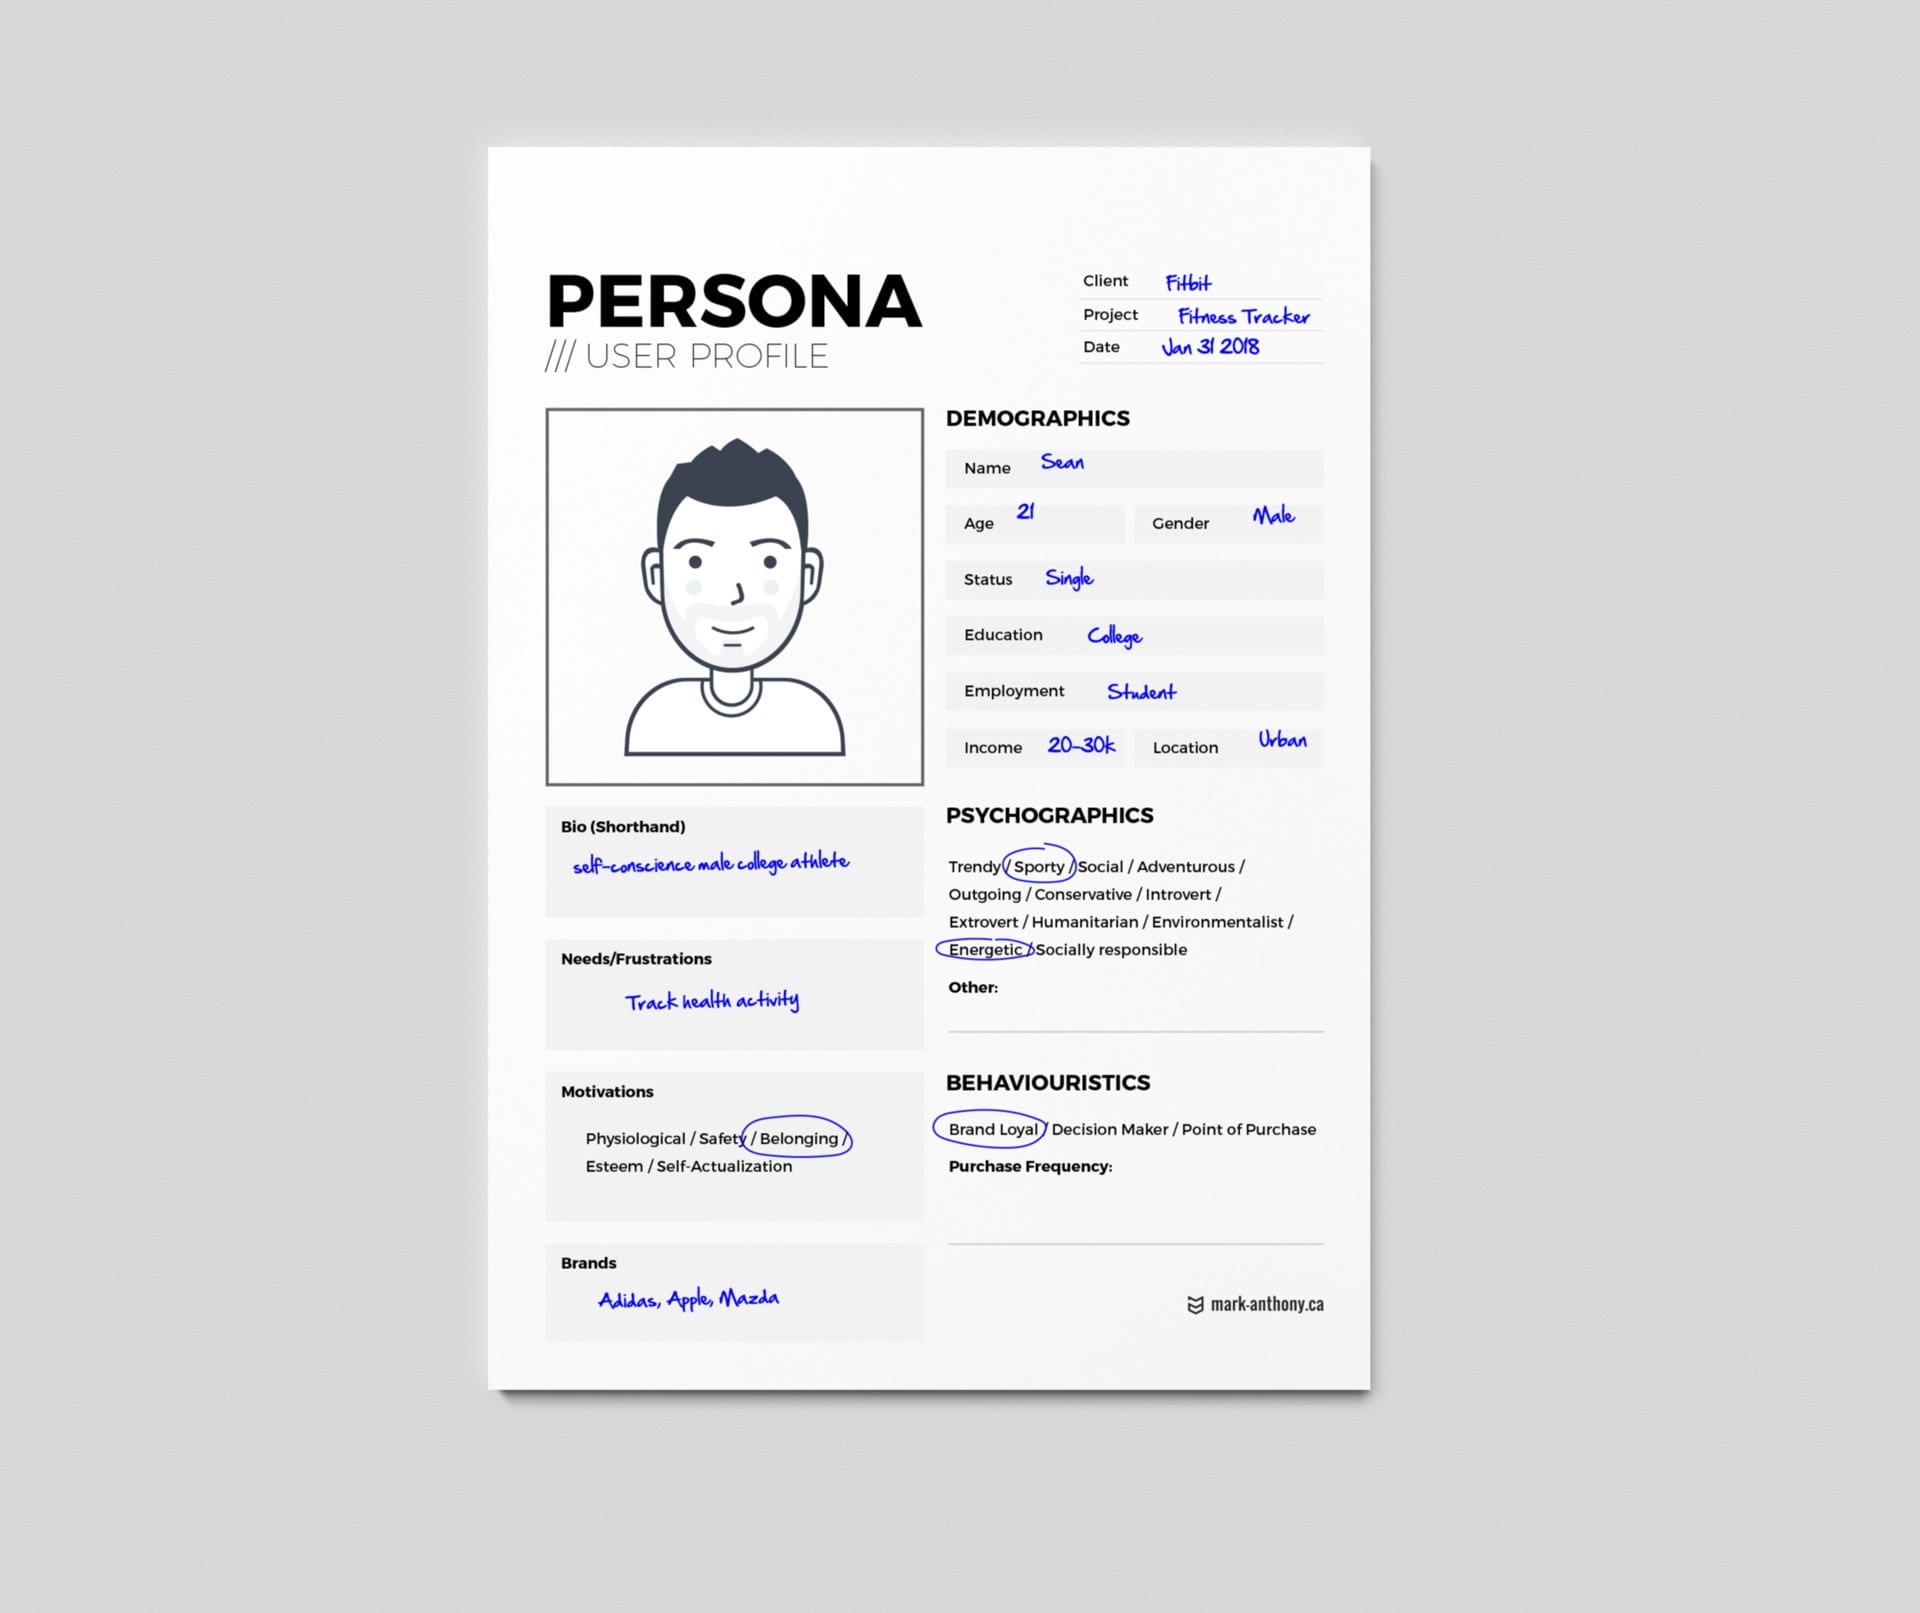 UX User Persona Example